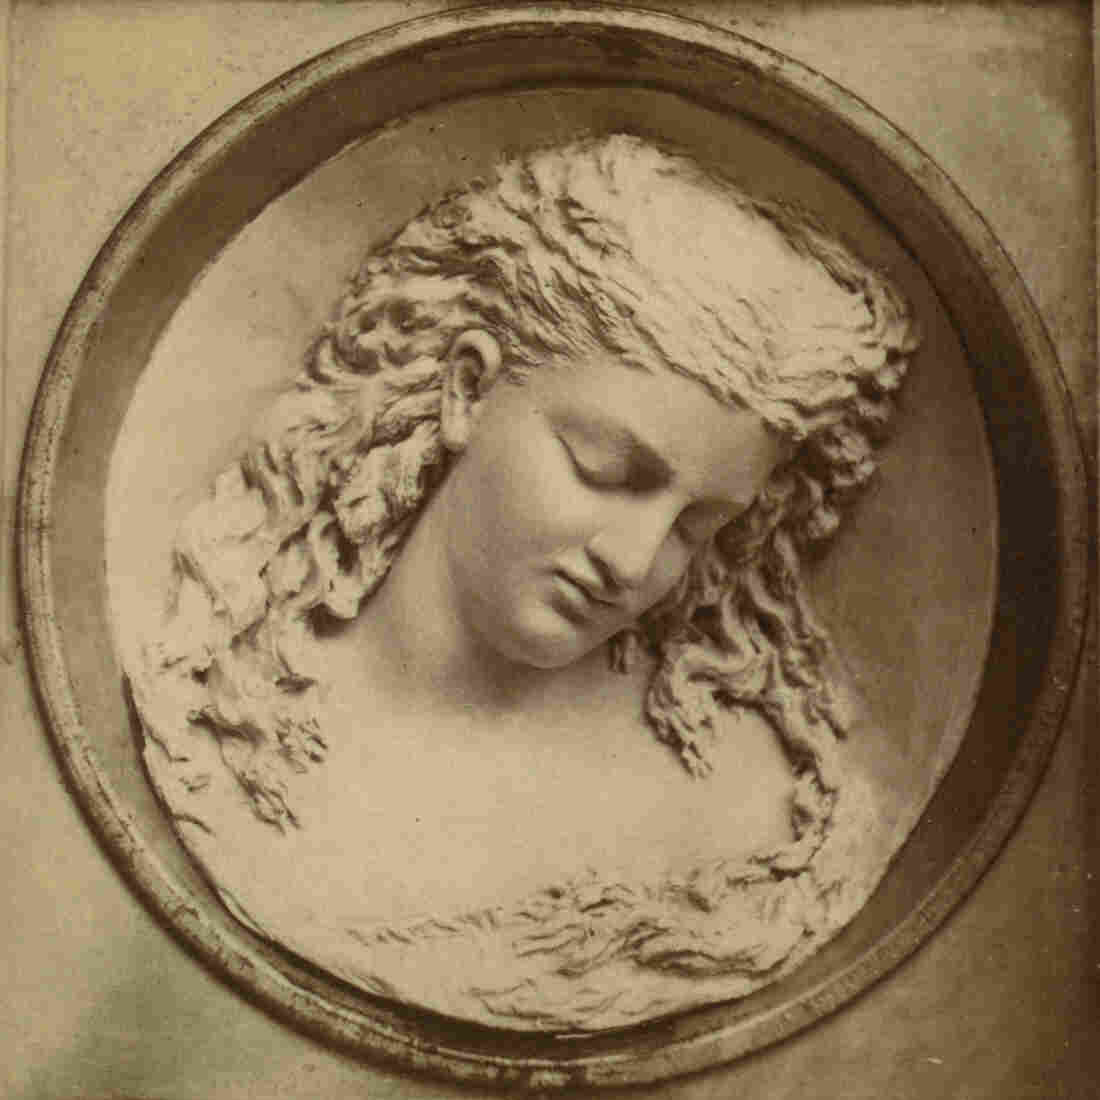 Dreaming Iolanthe, a butter sculpture created by Caroline Brooks for the Philadelphia Centennial Exposition in 1876